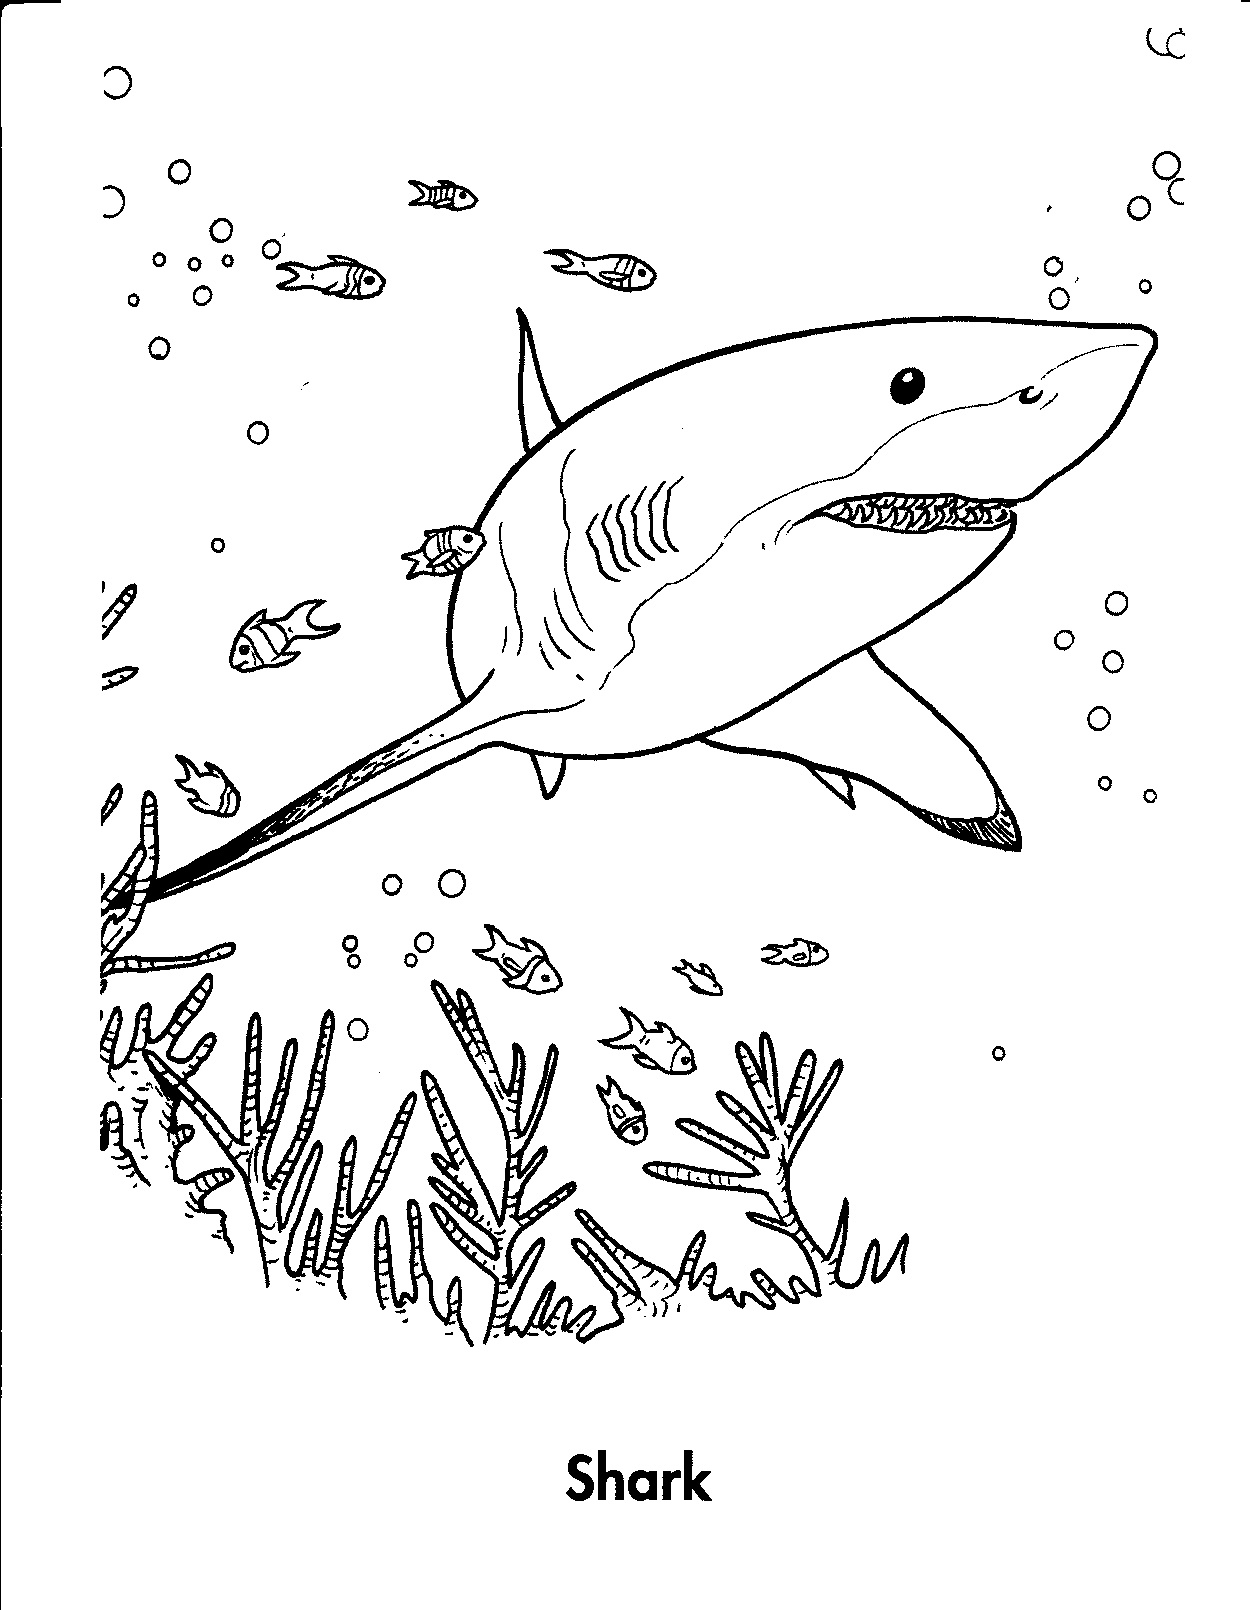 Free Printable Shark Coloring Pages For Kids - Free Printable Great White Shark Coloring Pages